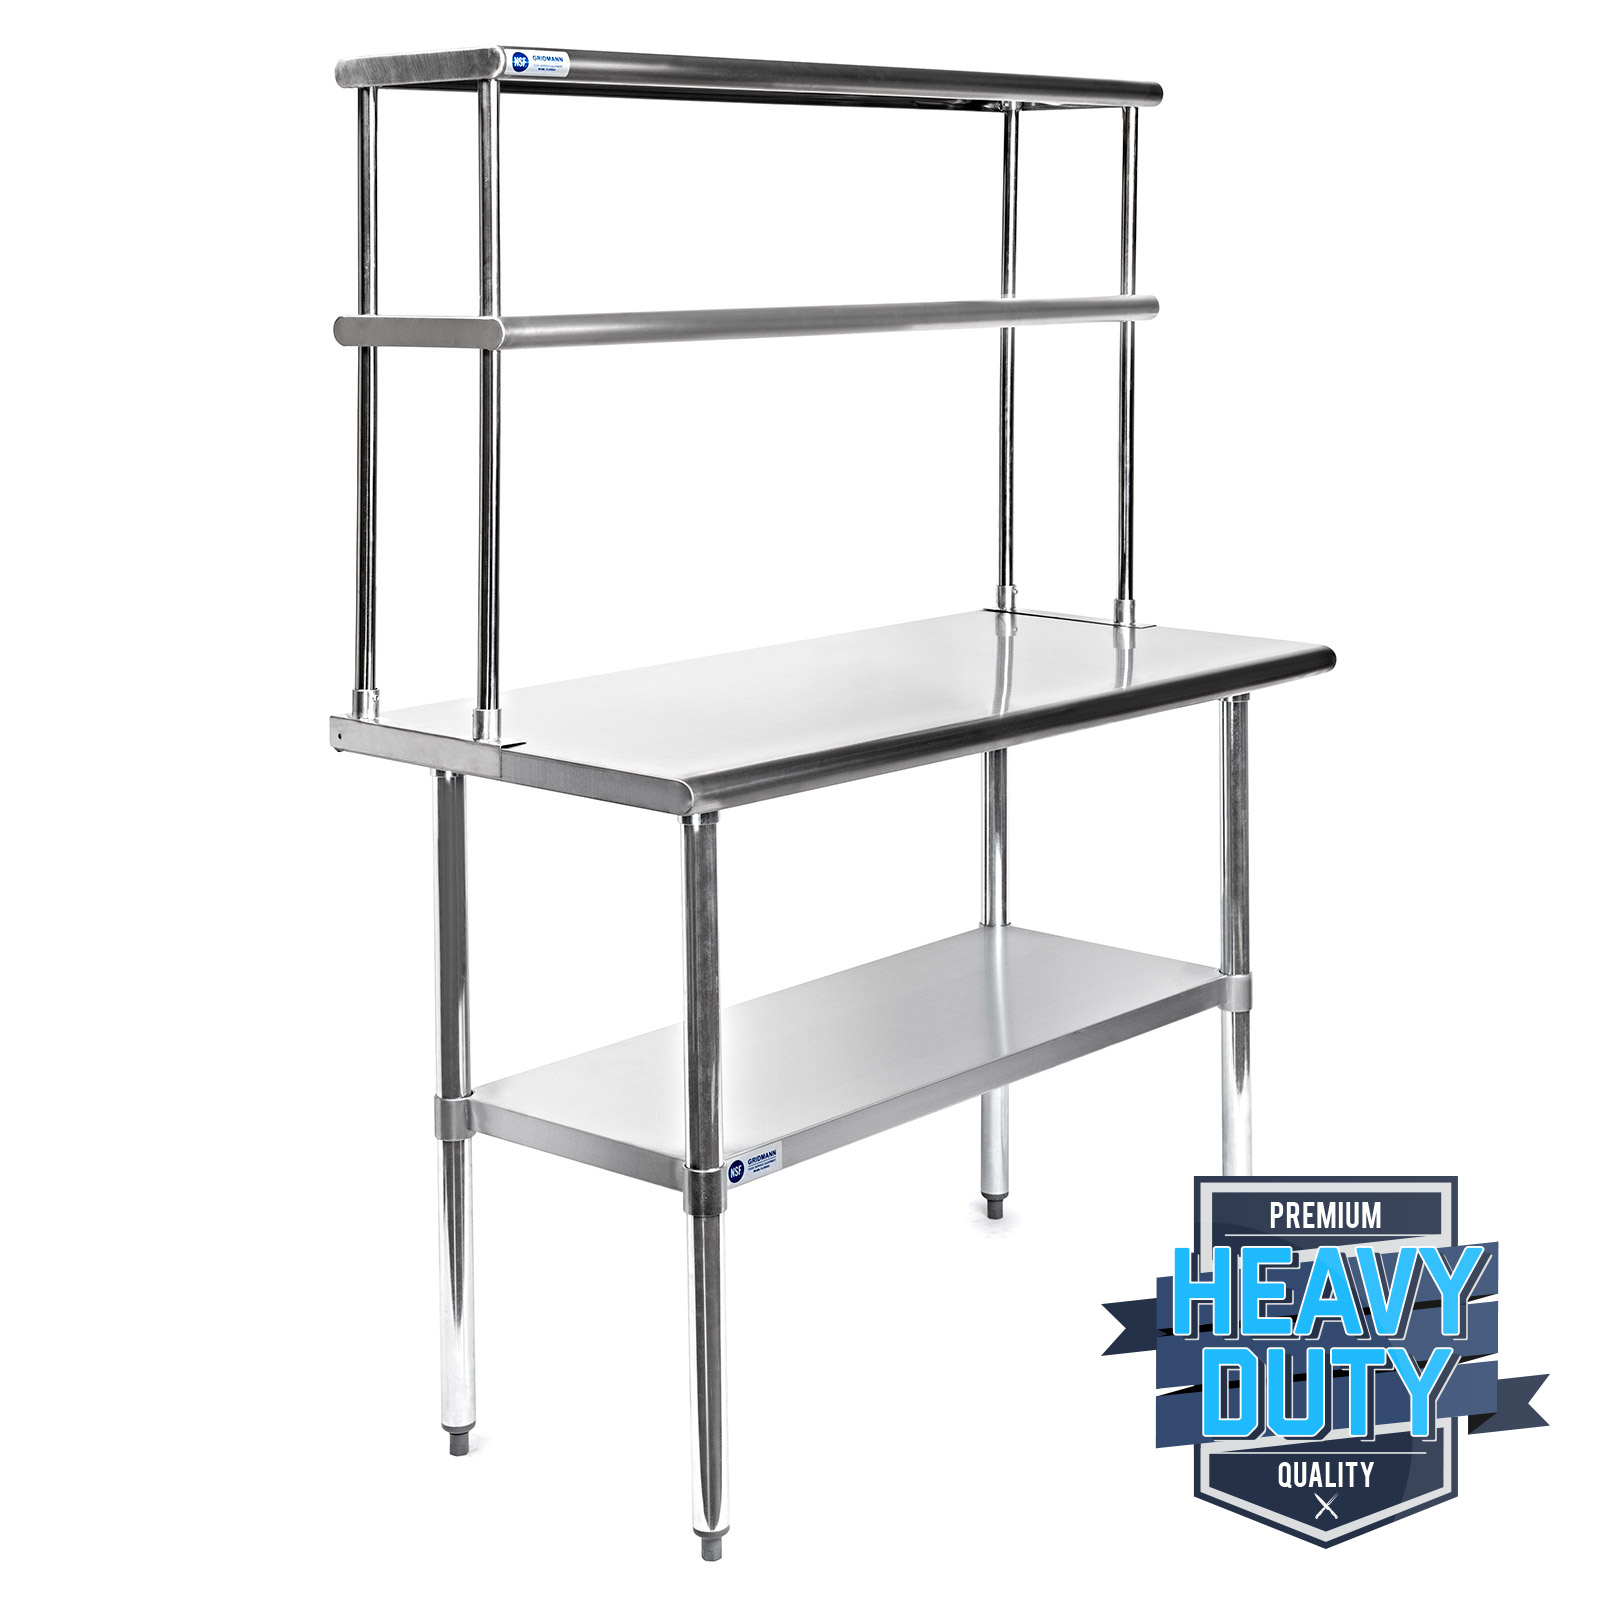 STAINLESS STEEL COMMERCIAL Kitchen Prep Table with Double Overshelf ...